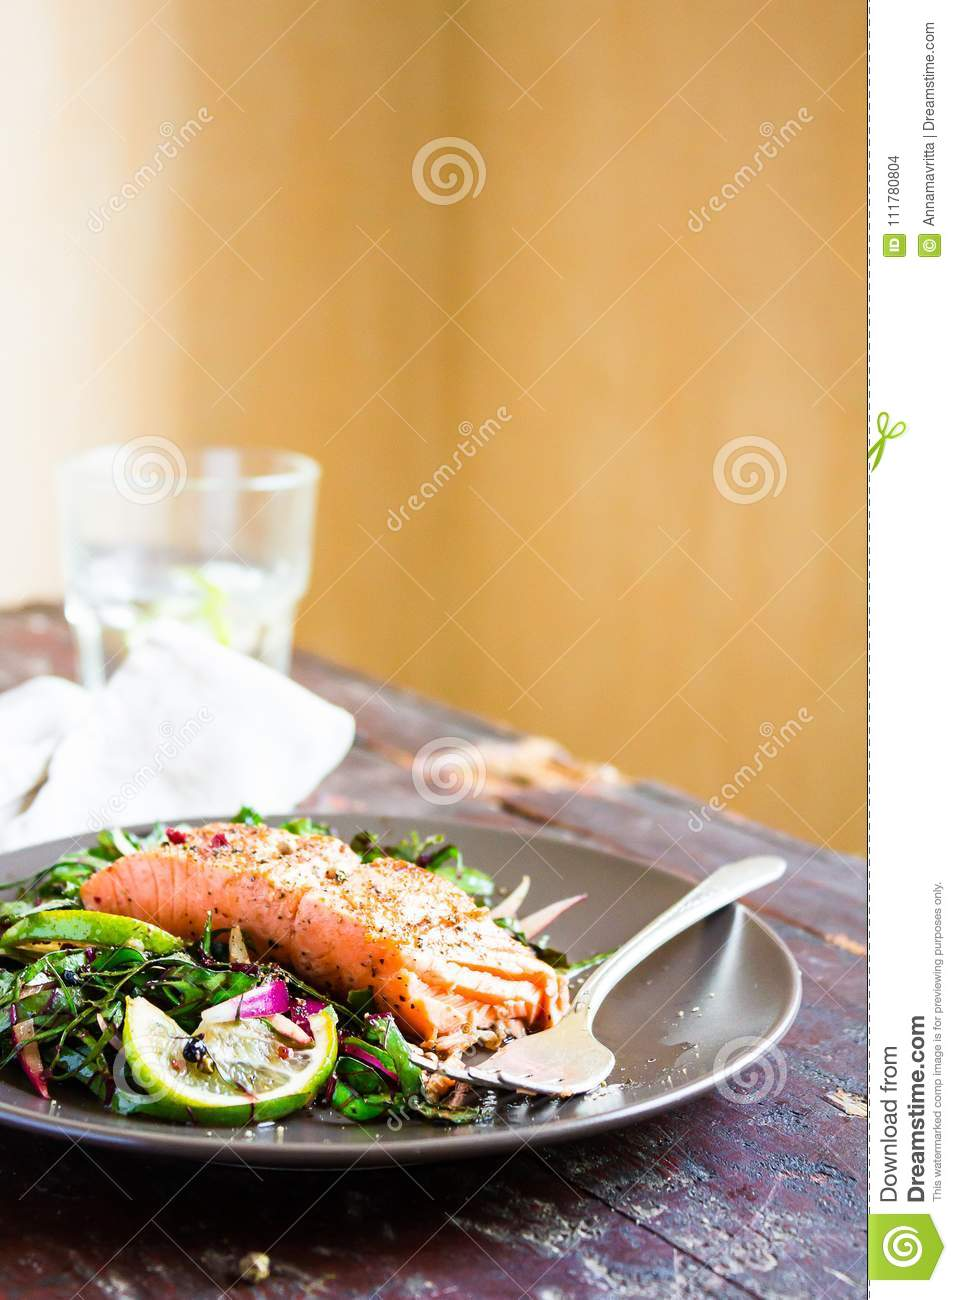 Plate of salmon fillet steak roasted with spices served with fresh salad with lime fruit and peppercorns on a wooden table, select